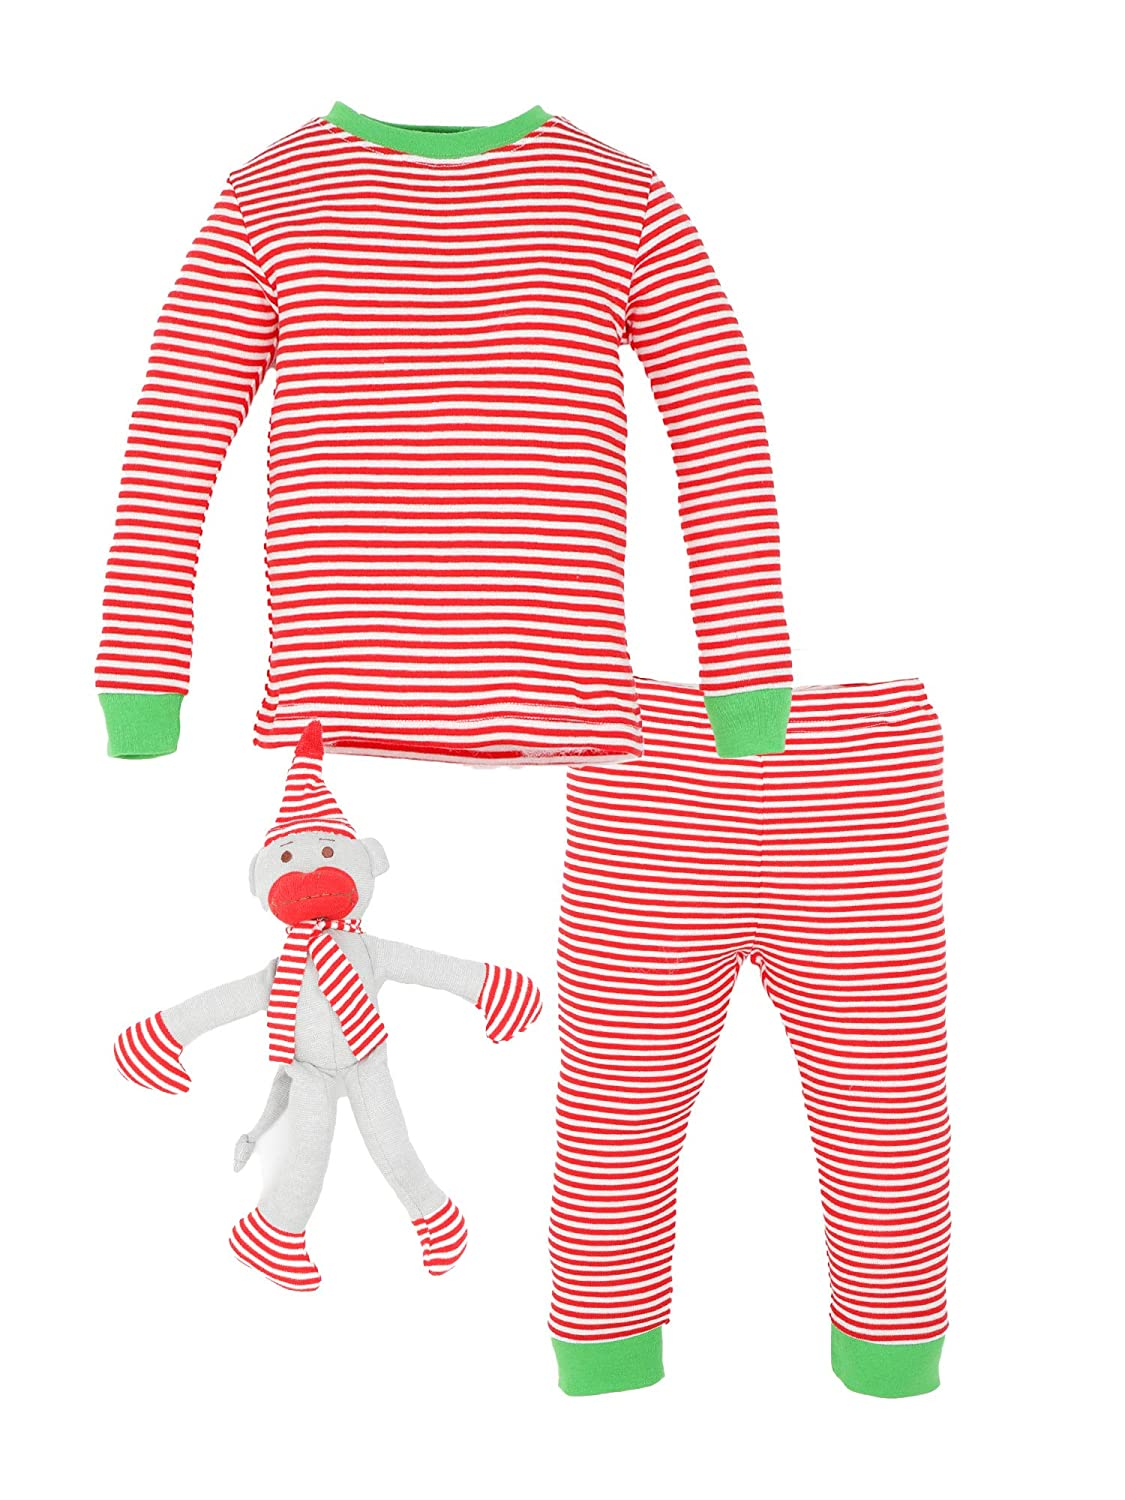 Under The Nile Organic Cotton Toddler Holiday Candy Cane Stripe Long Johns and Monkey, 12 Months